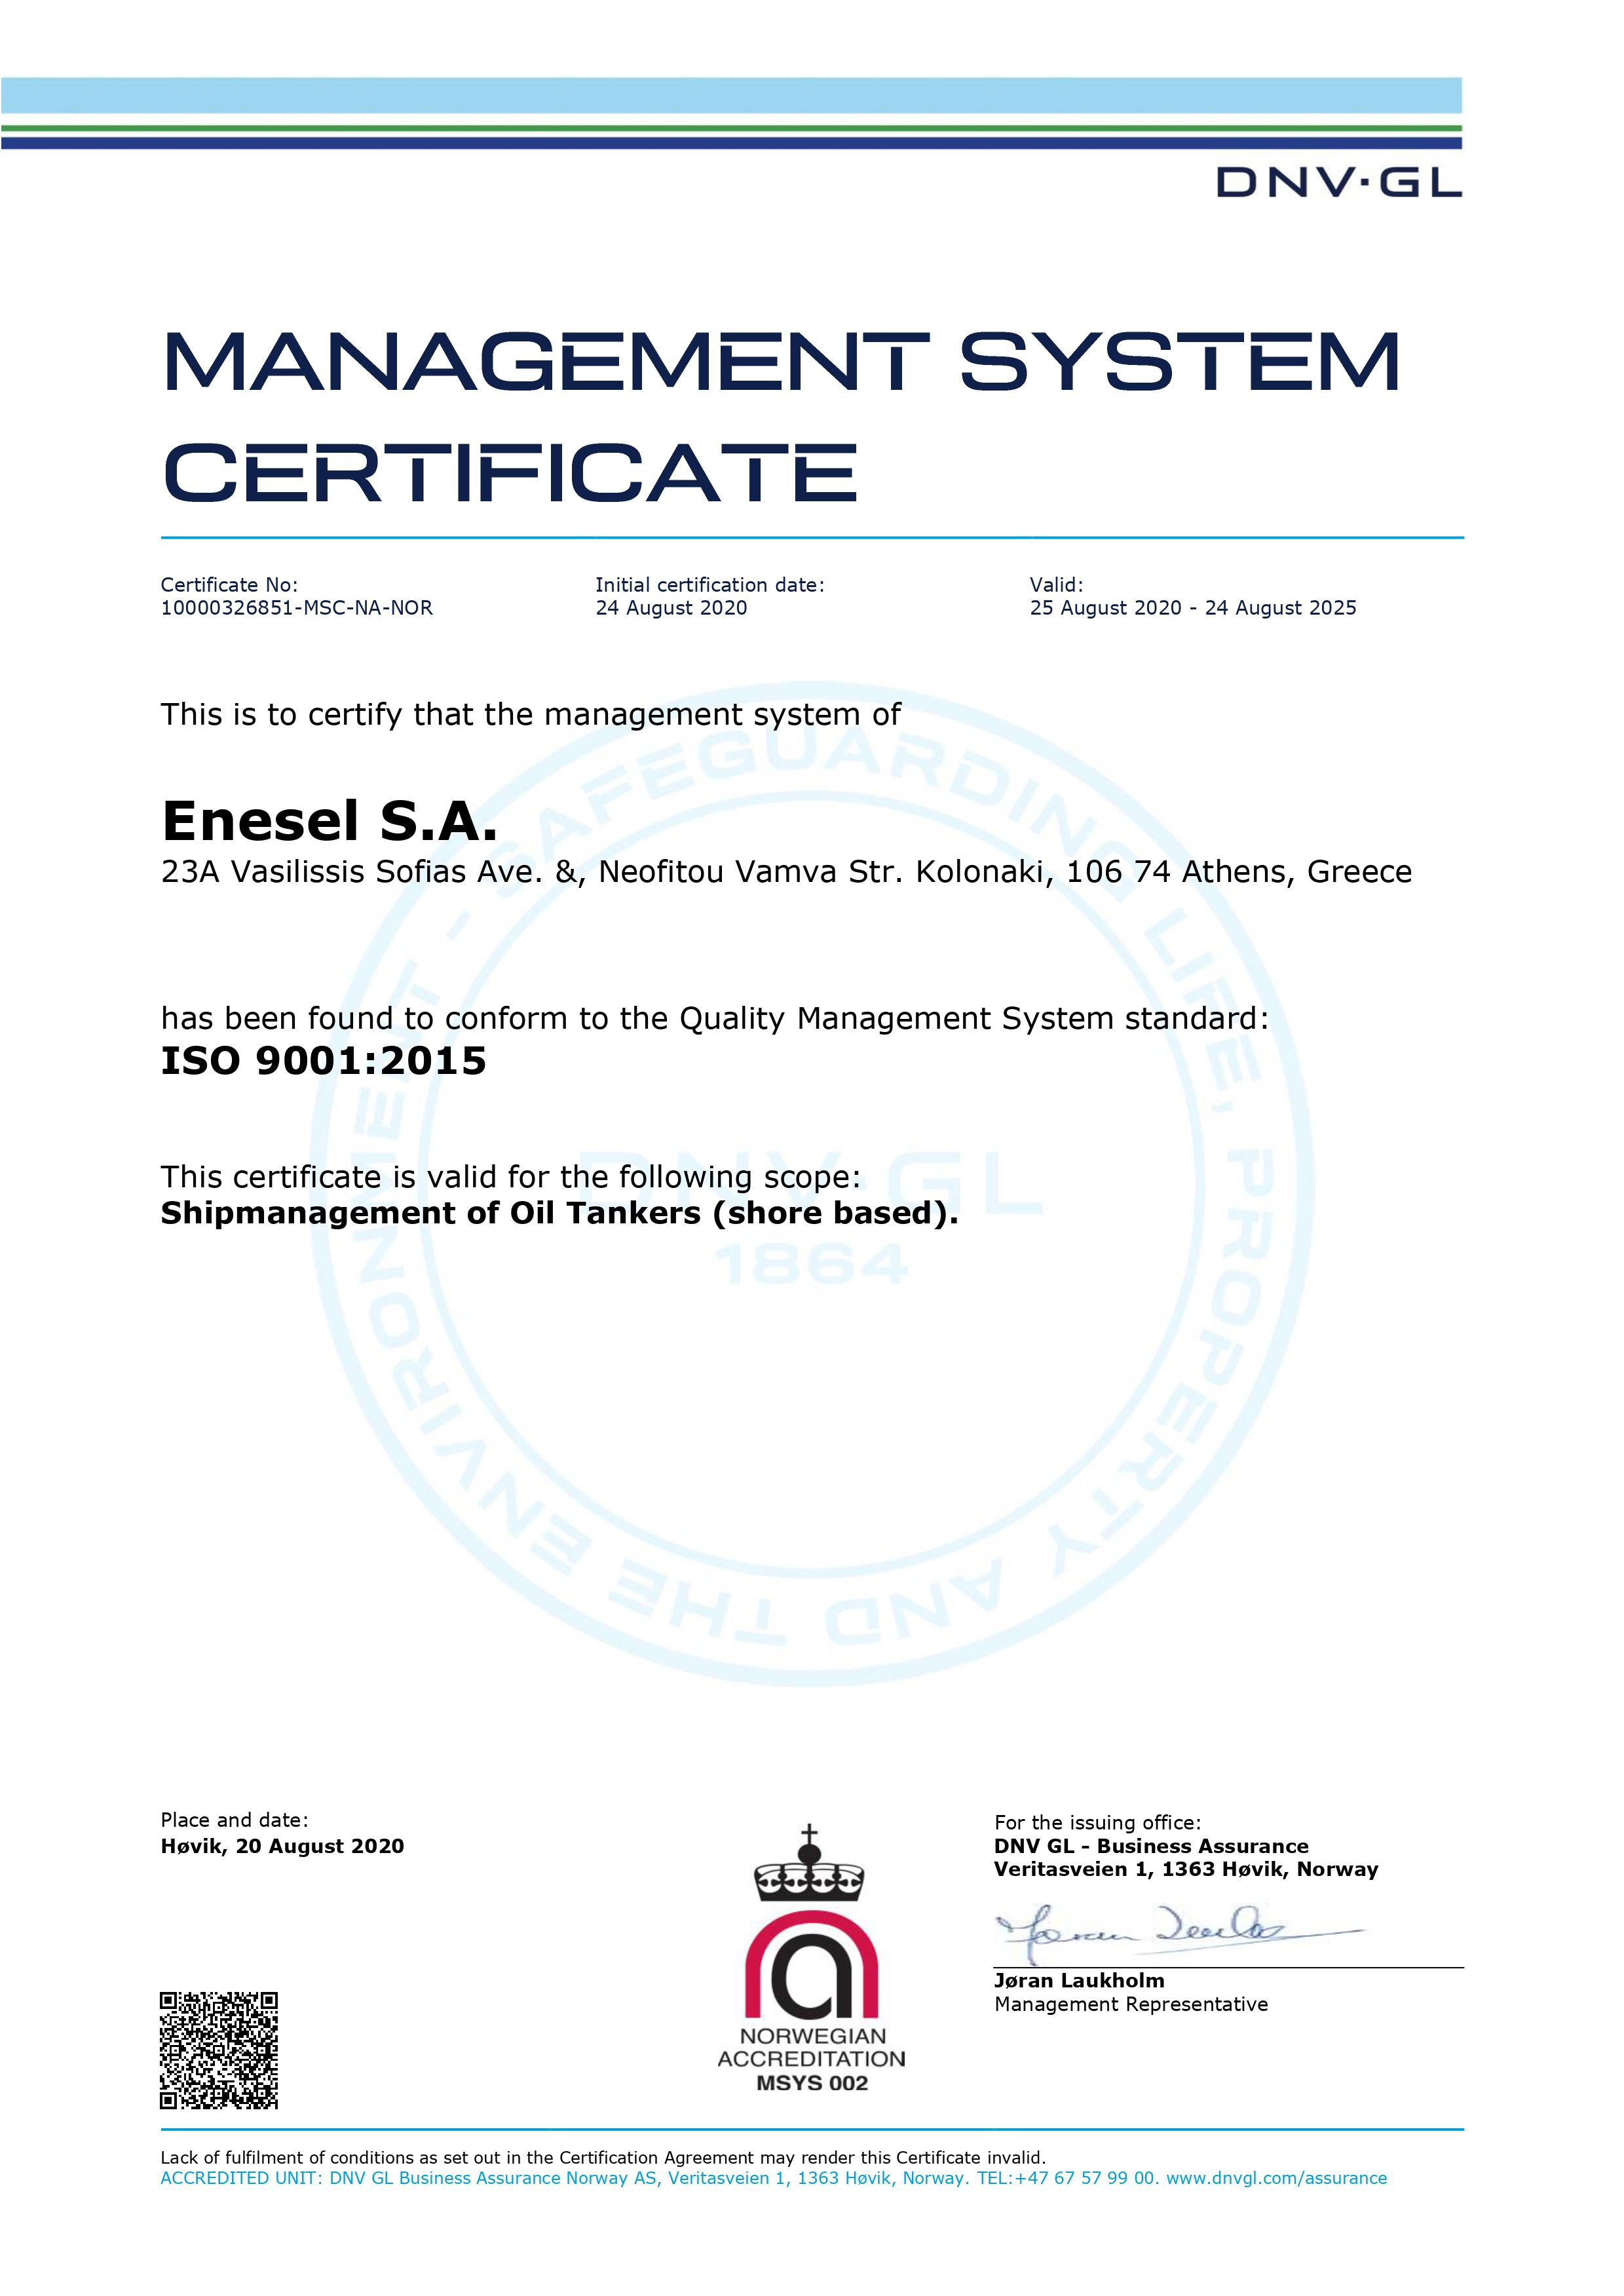 ISO 9001:2015 certification for our quality management system